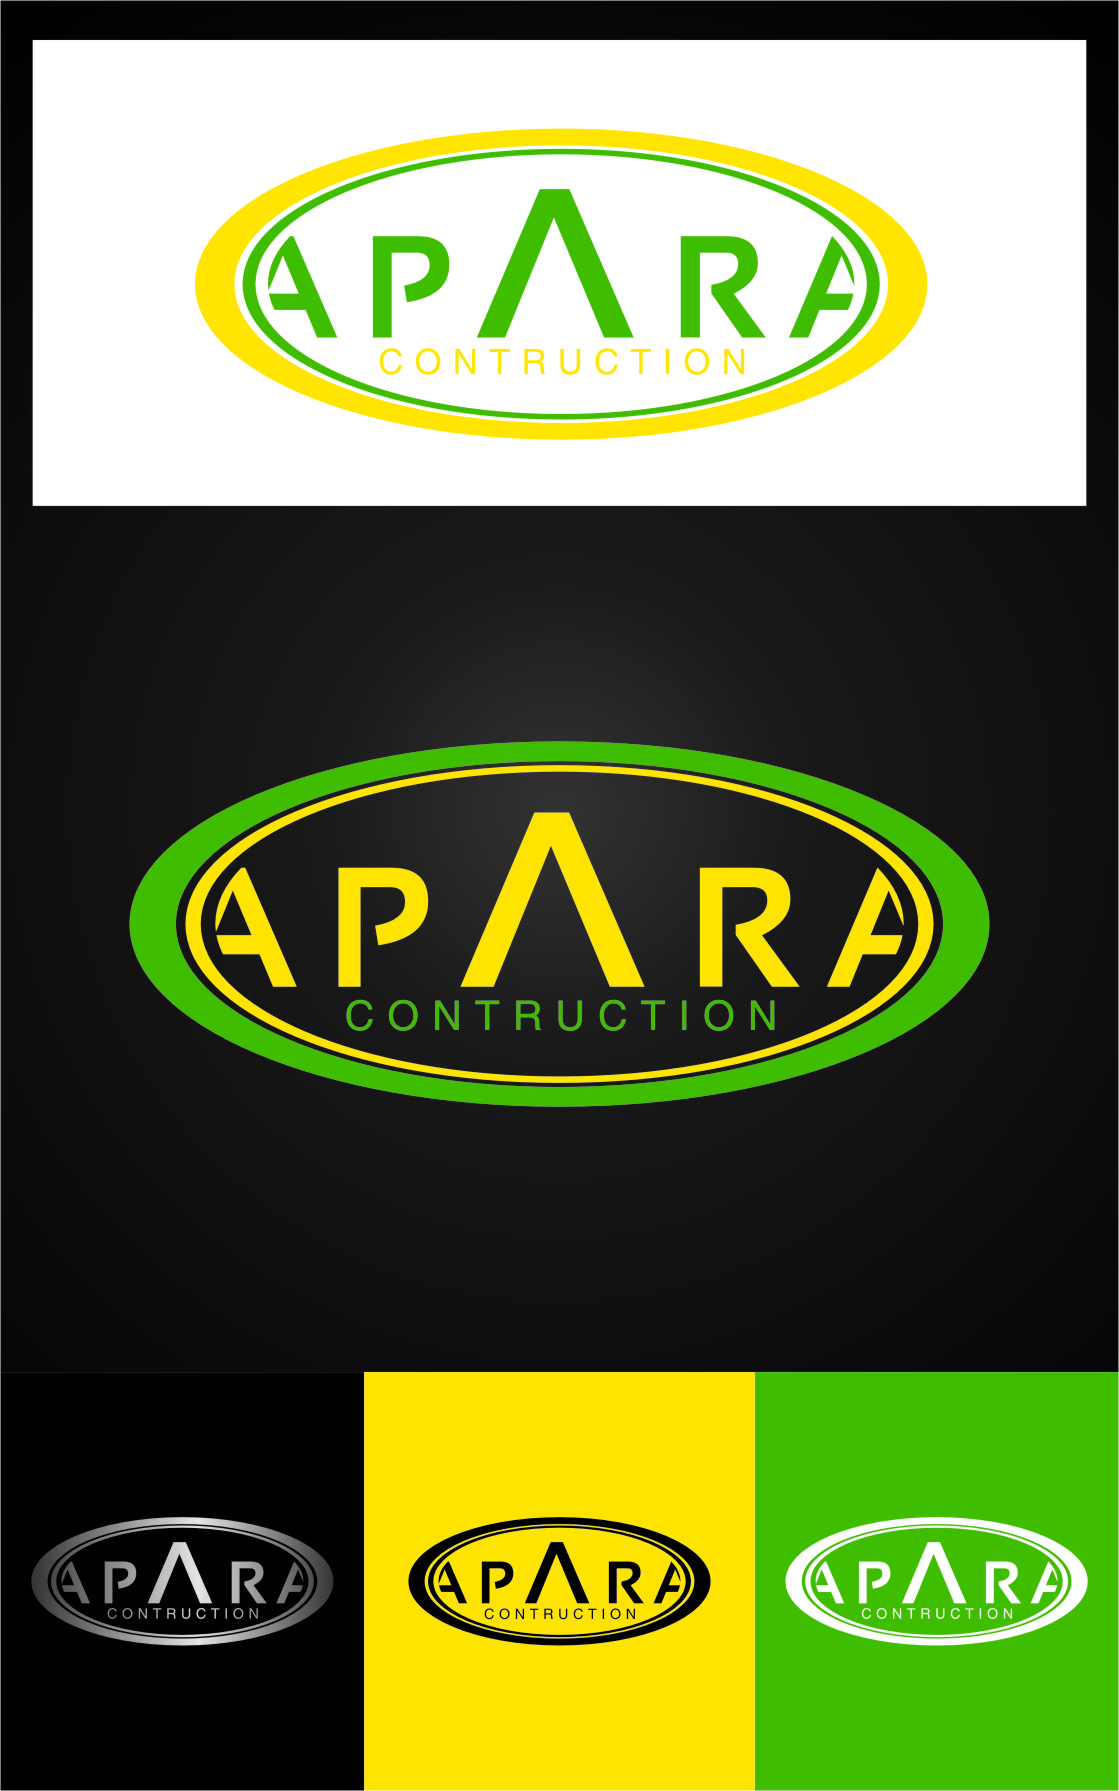 Logo Design by Ngepet_art - Entry No. 122 in the Logo Design Contest Apara Construction Logo Design.